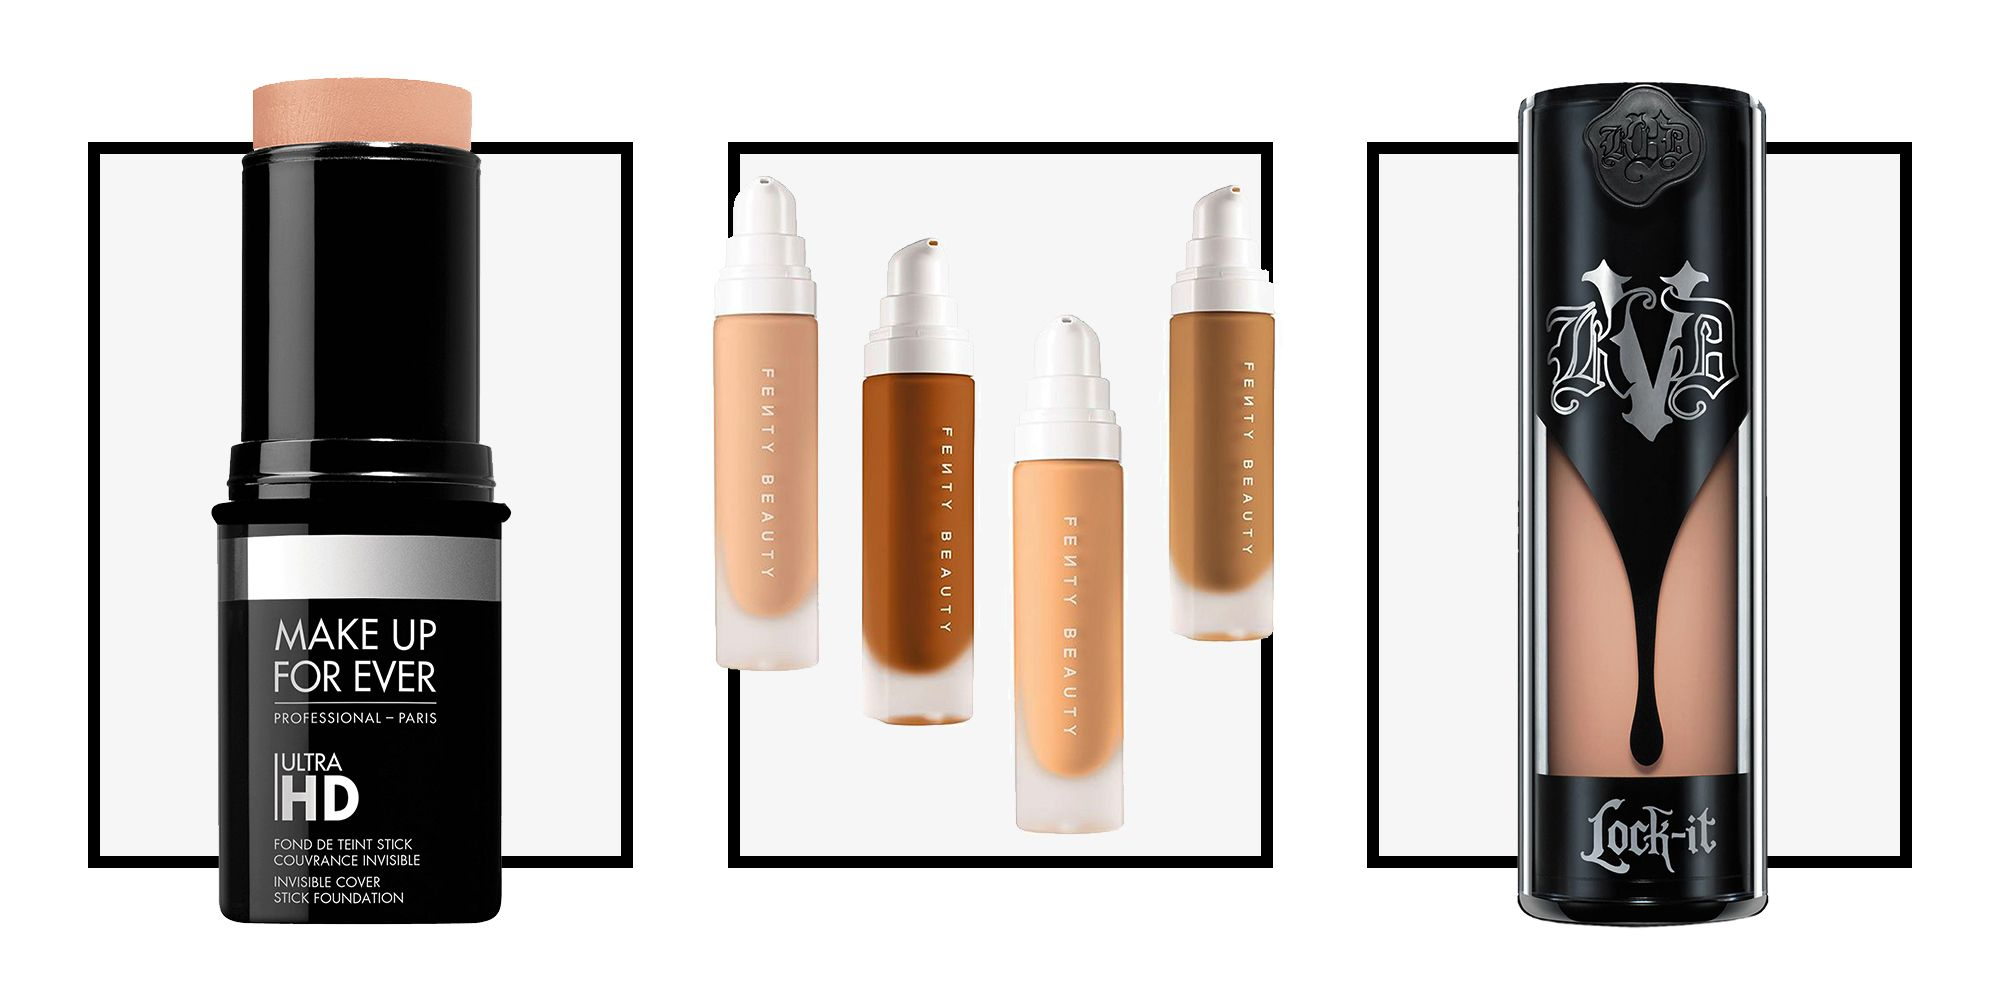 17 Full-Coverage Foundations That Make Skin Look Naturally Flawless